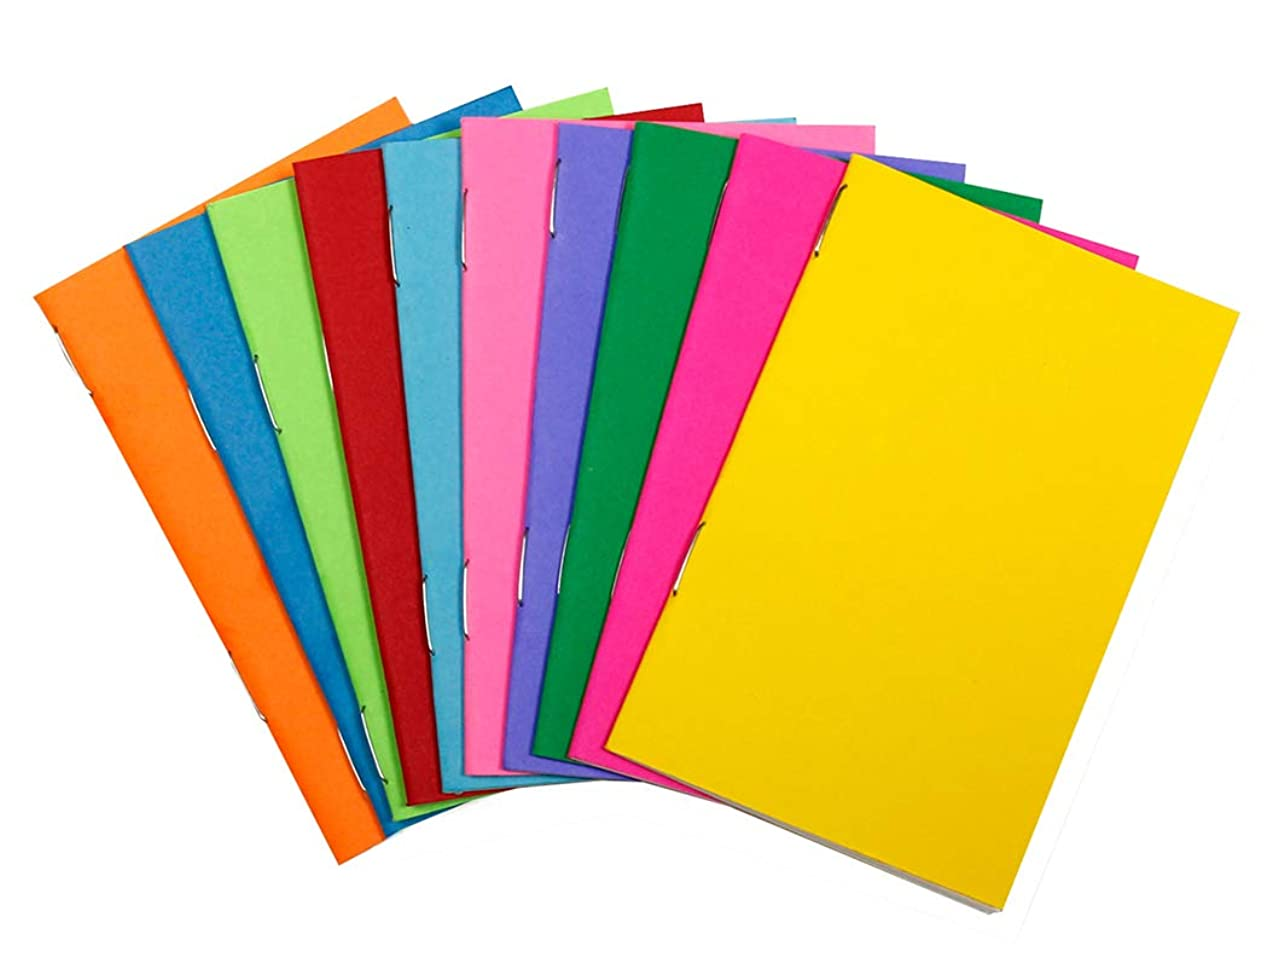 Hygloss Tiny Colorful Blank Books Notebook, Sketch Pad, Journal for Drawing, Writing and Scrapbooking, 2 ? x 4 ?-inch-20 per Pack